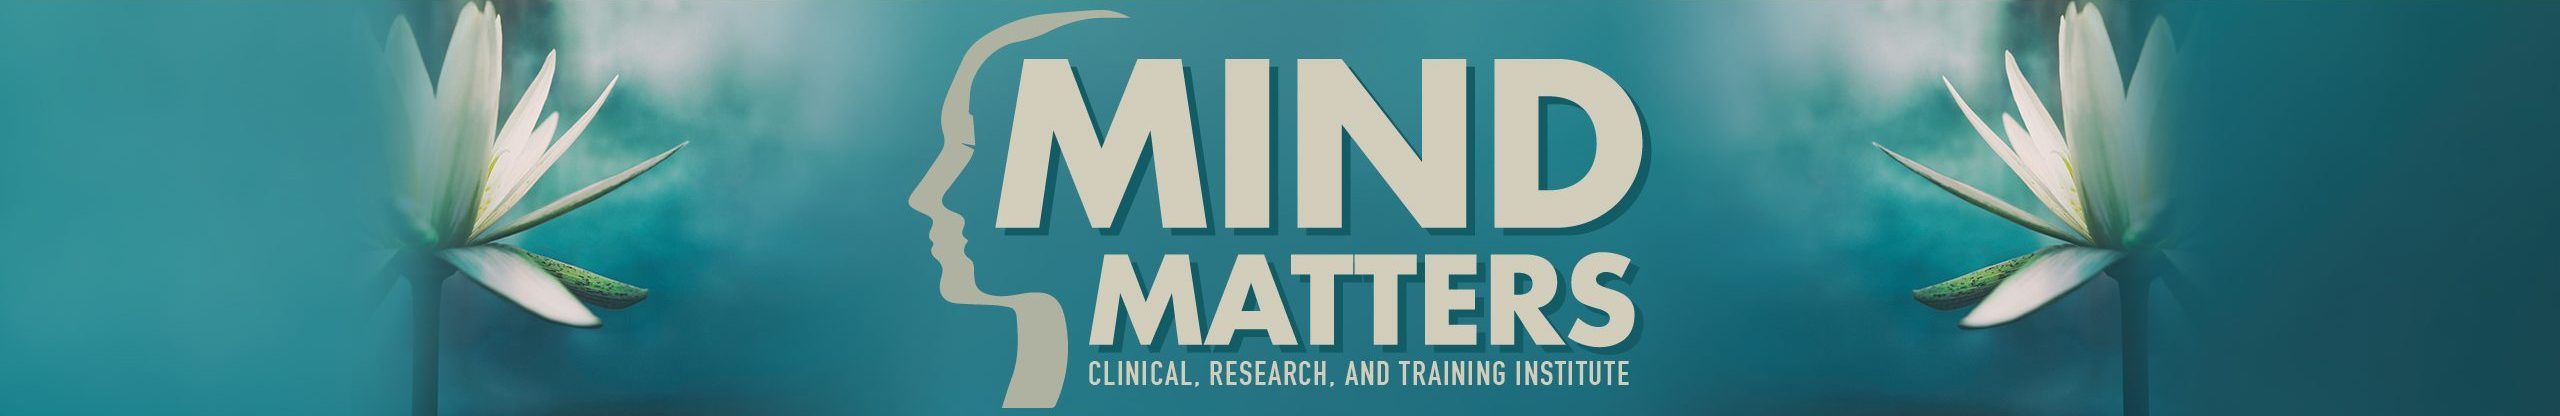 Mind Matters Institute, A Clinical Research and Training Institute